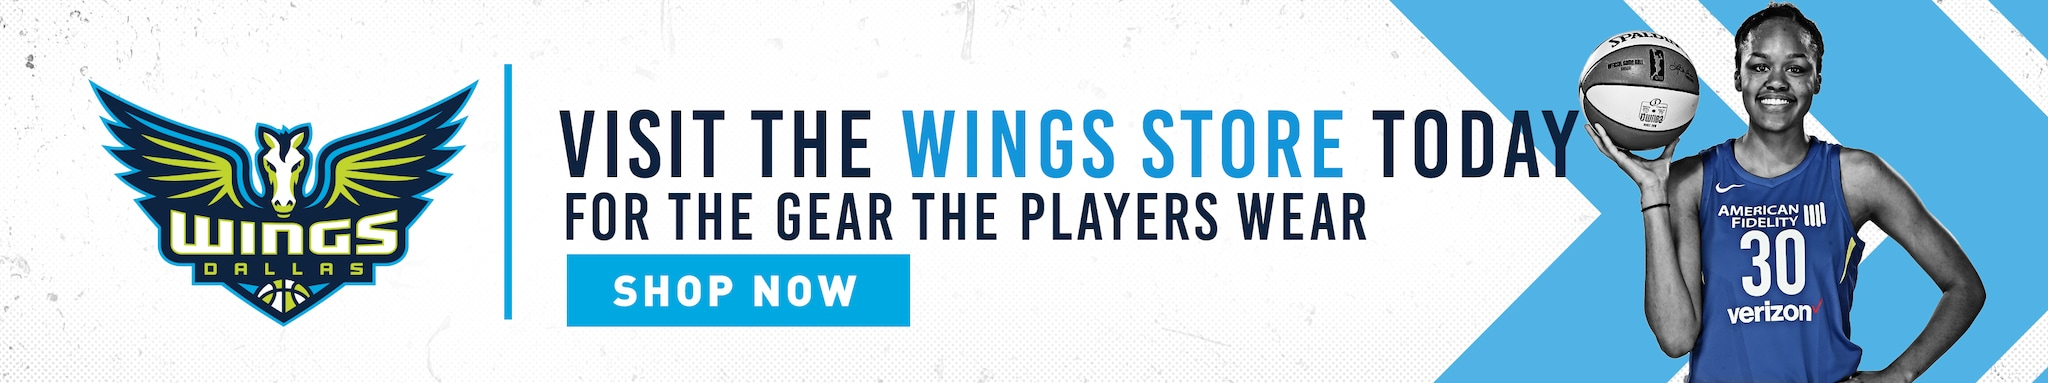 Visit the Wings Store